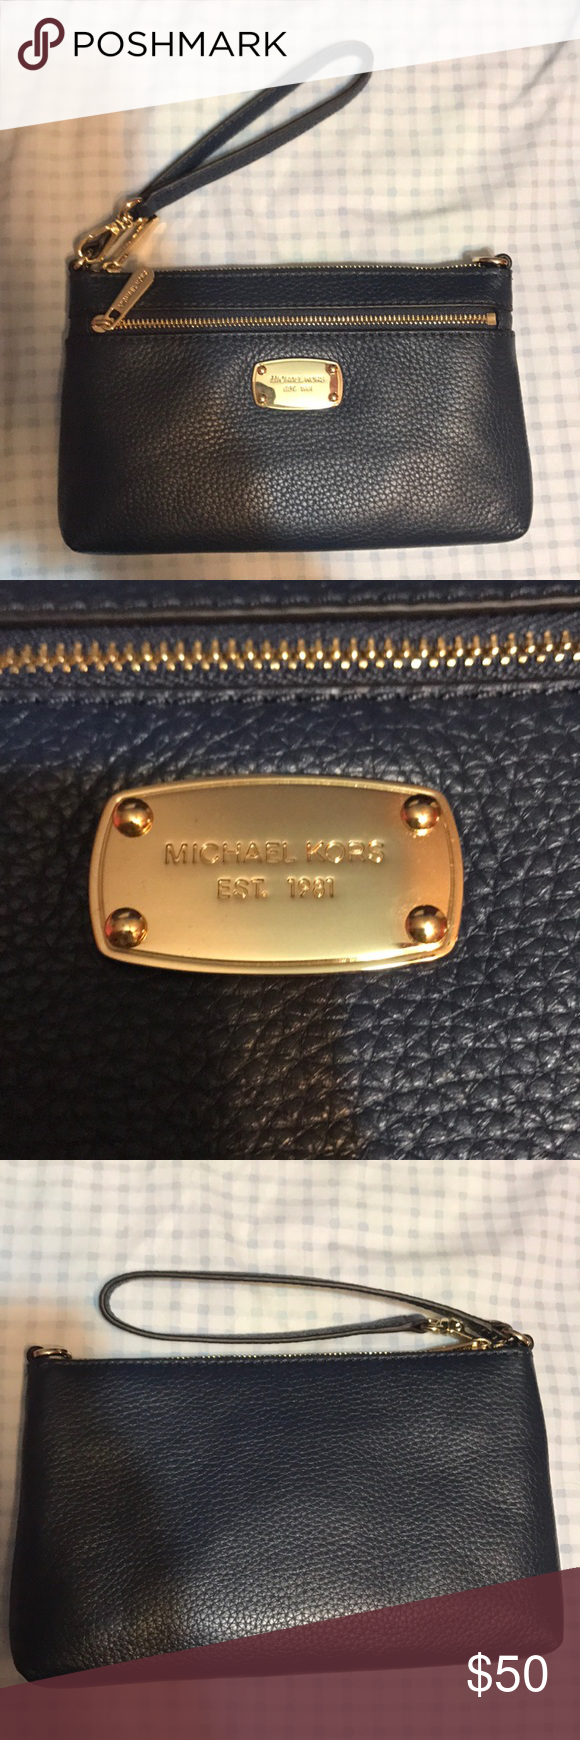 Michael Kors Wristlet in Navy Brand new, never used, tag still with it. Very soft and perfect to fit phone and other essentials. Michael Kors Bags Clutches & Wristlets